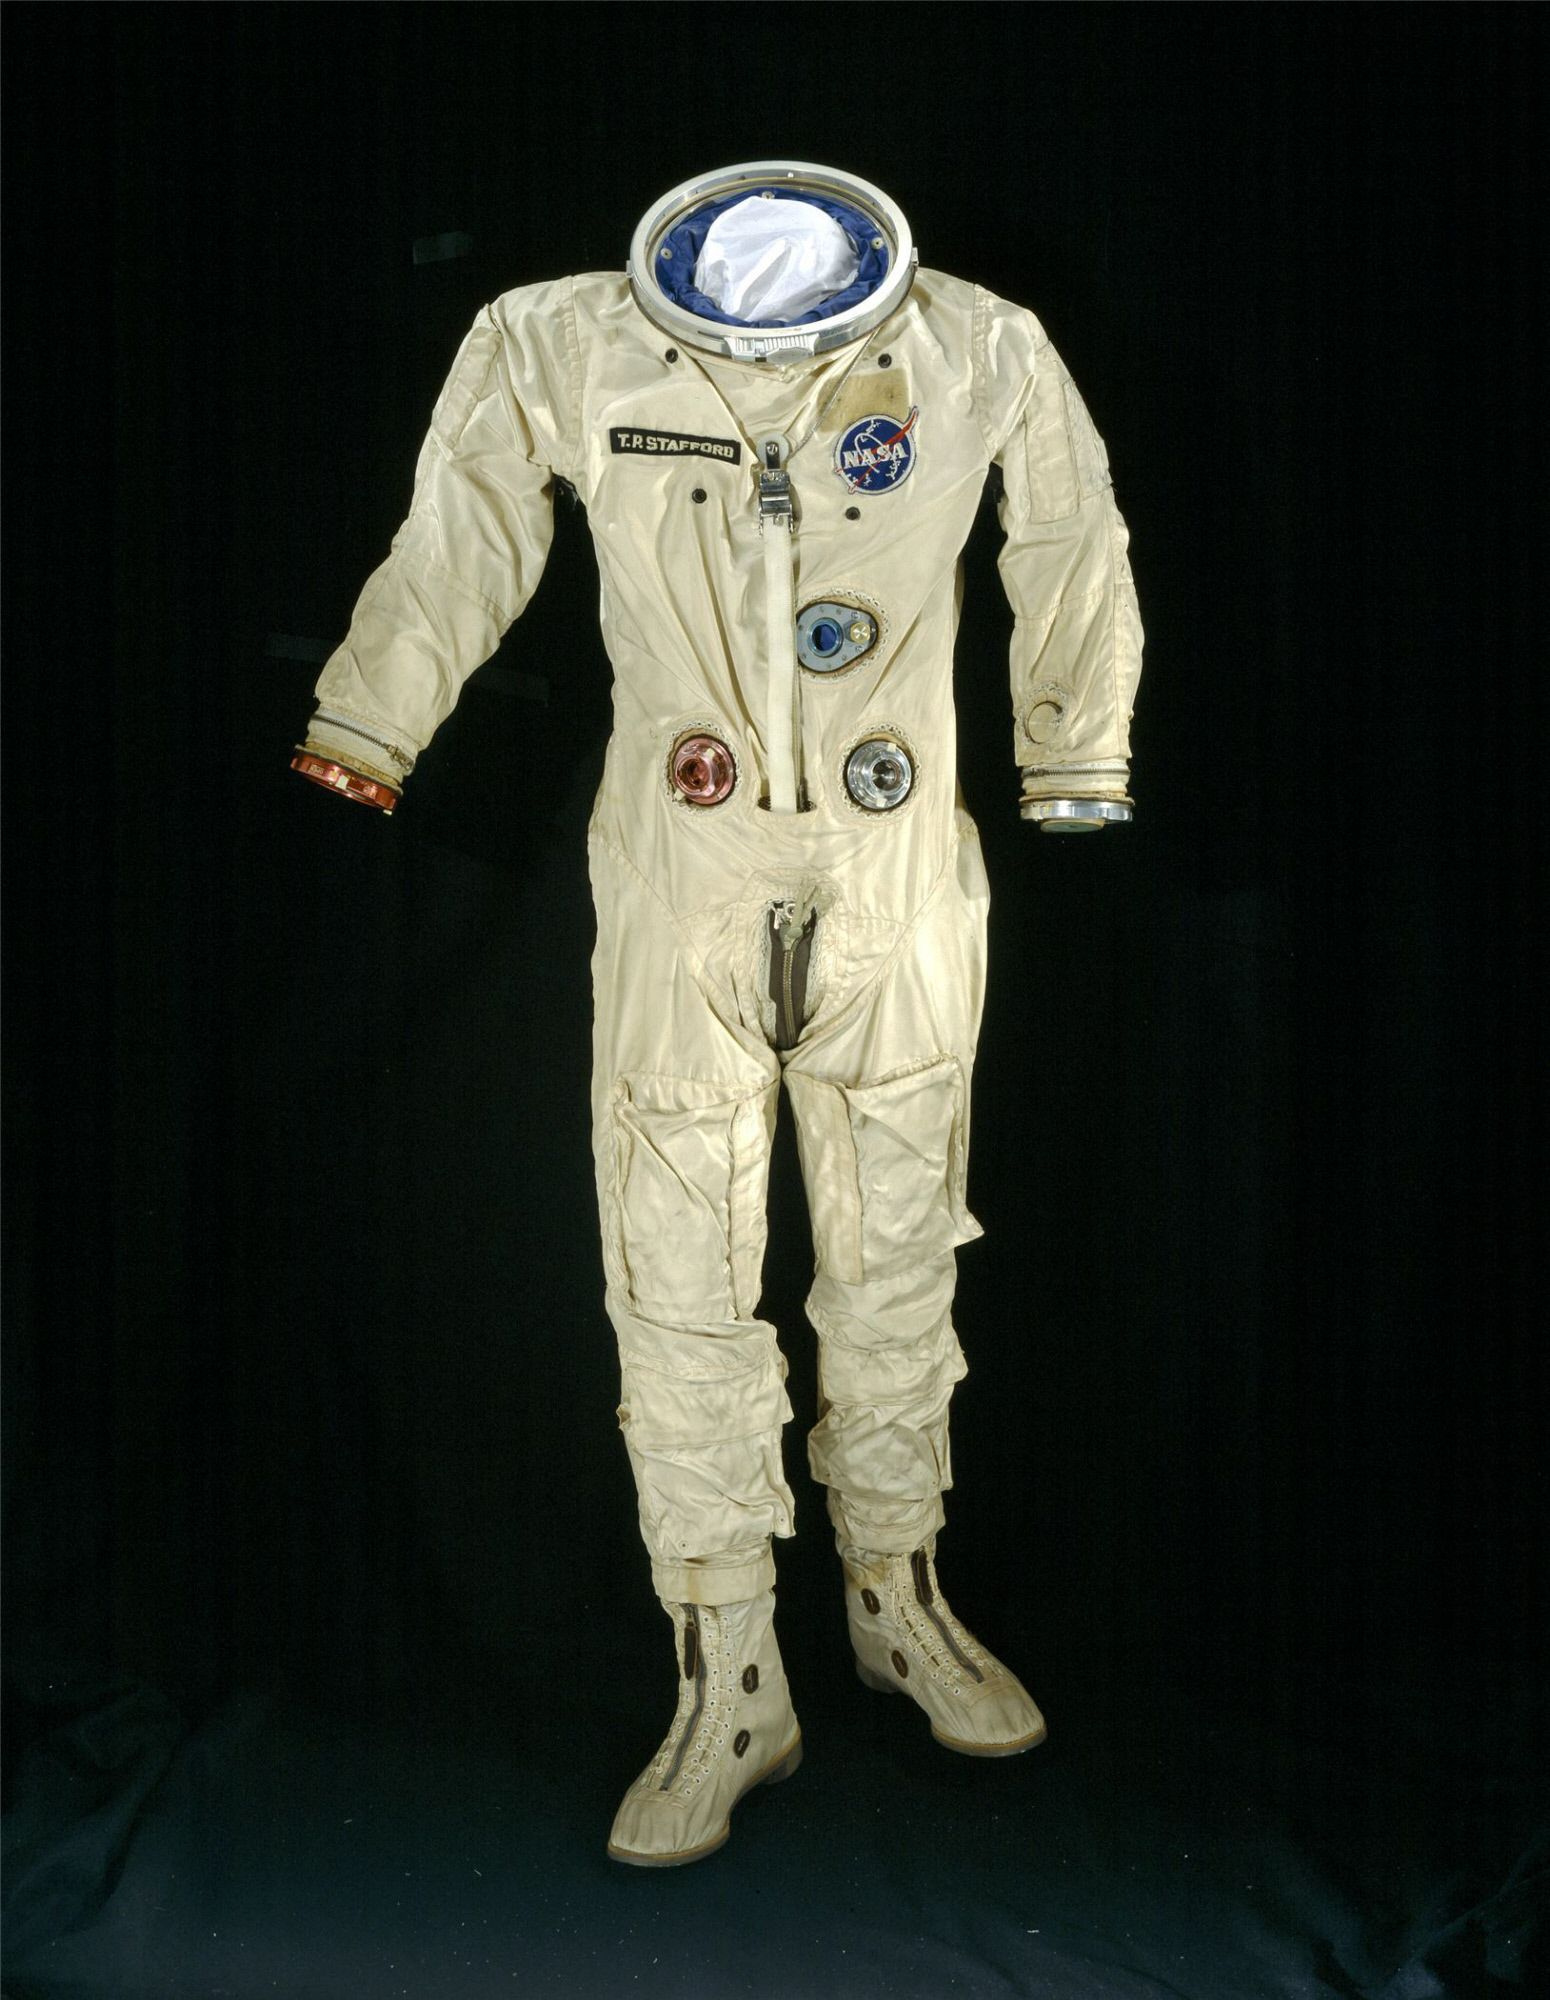 thomas p stafford wore this spacesuit on gemini ix a mission launched june 3 1966  [ 1550 x 2000 Pixel ]